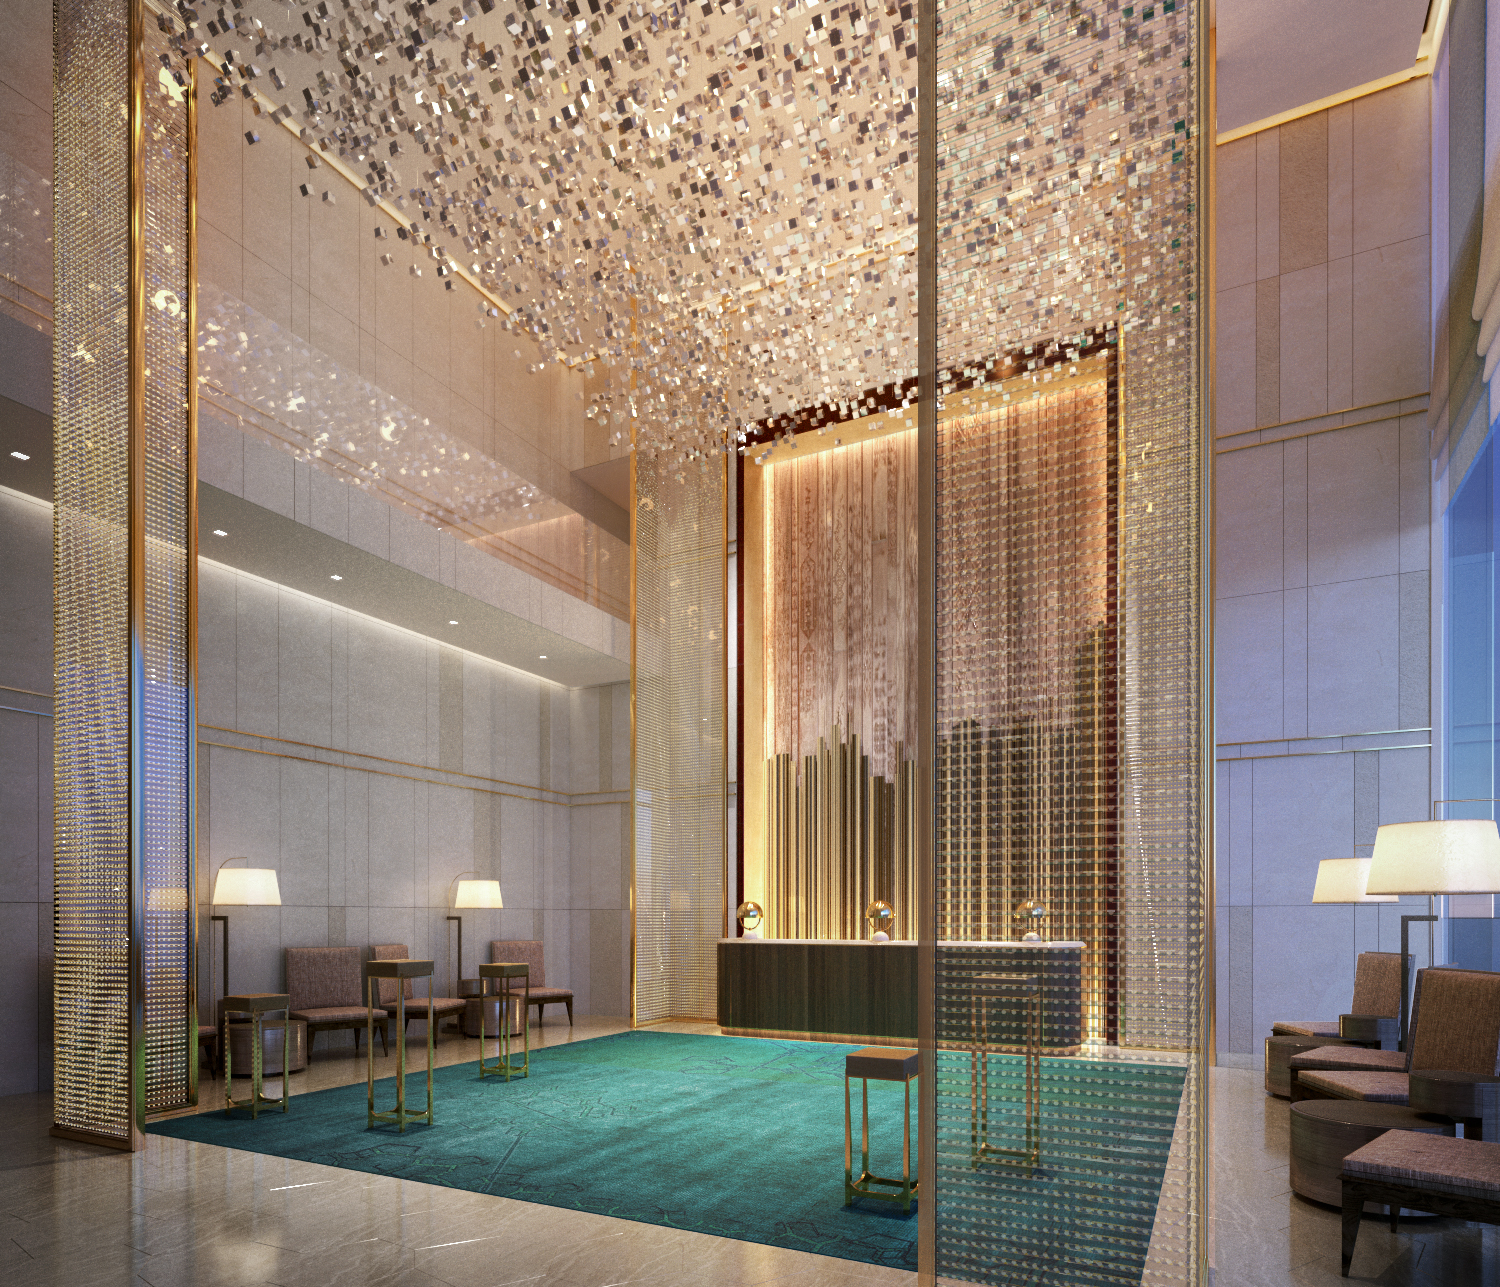 Langham hospitality group introduces new luxury hotel in dubai for Hip hotel dubai